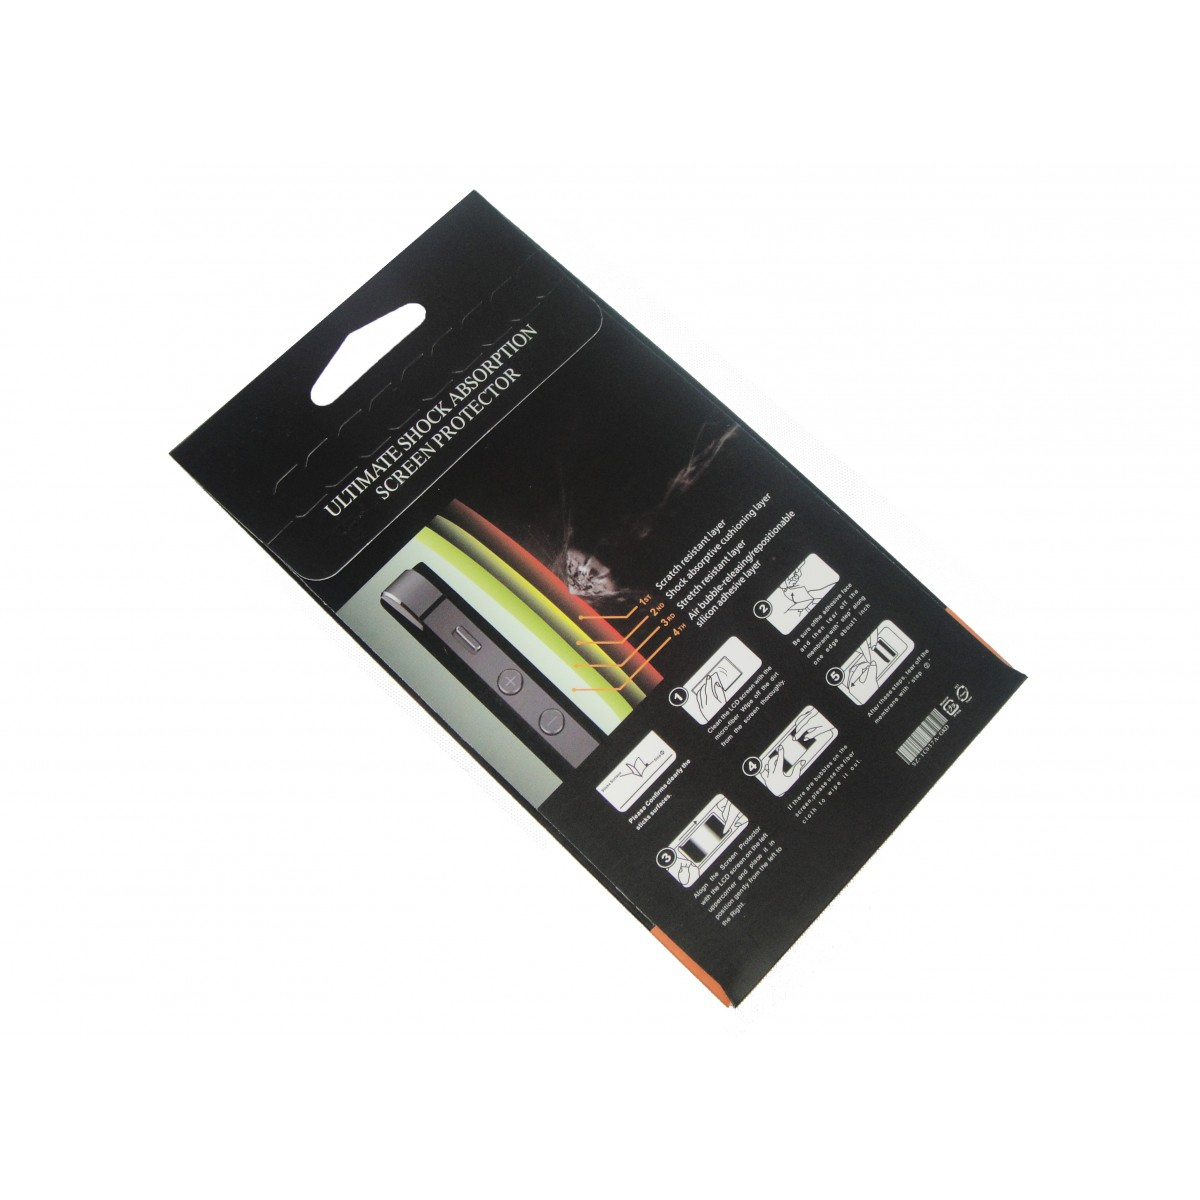 Pelicula Iphone 5 5G 5S Anti Impacto Shock Ultra Resistente